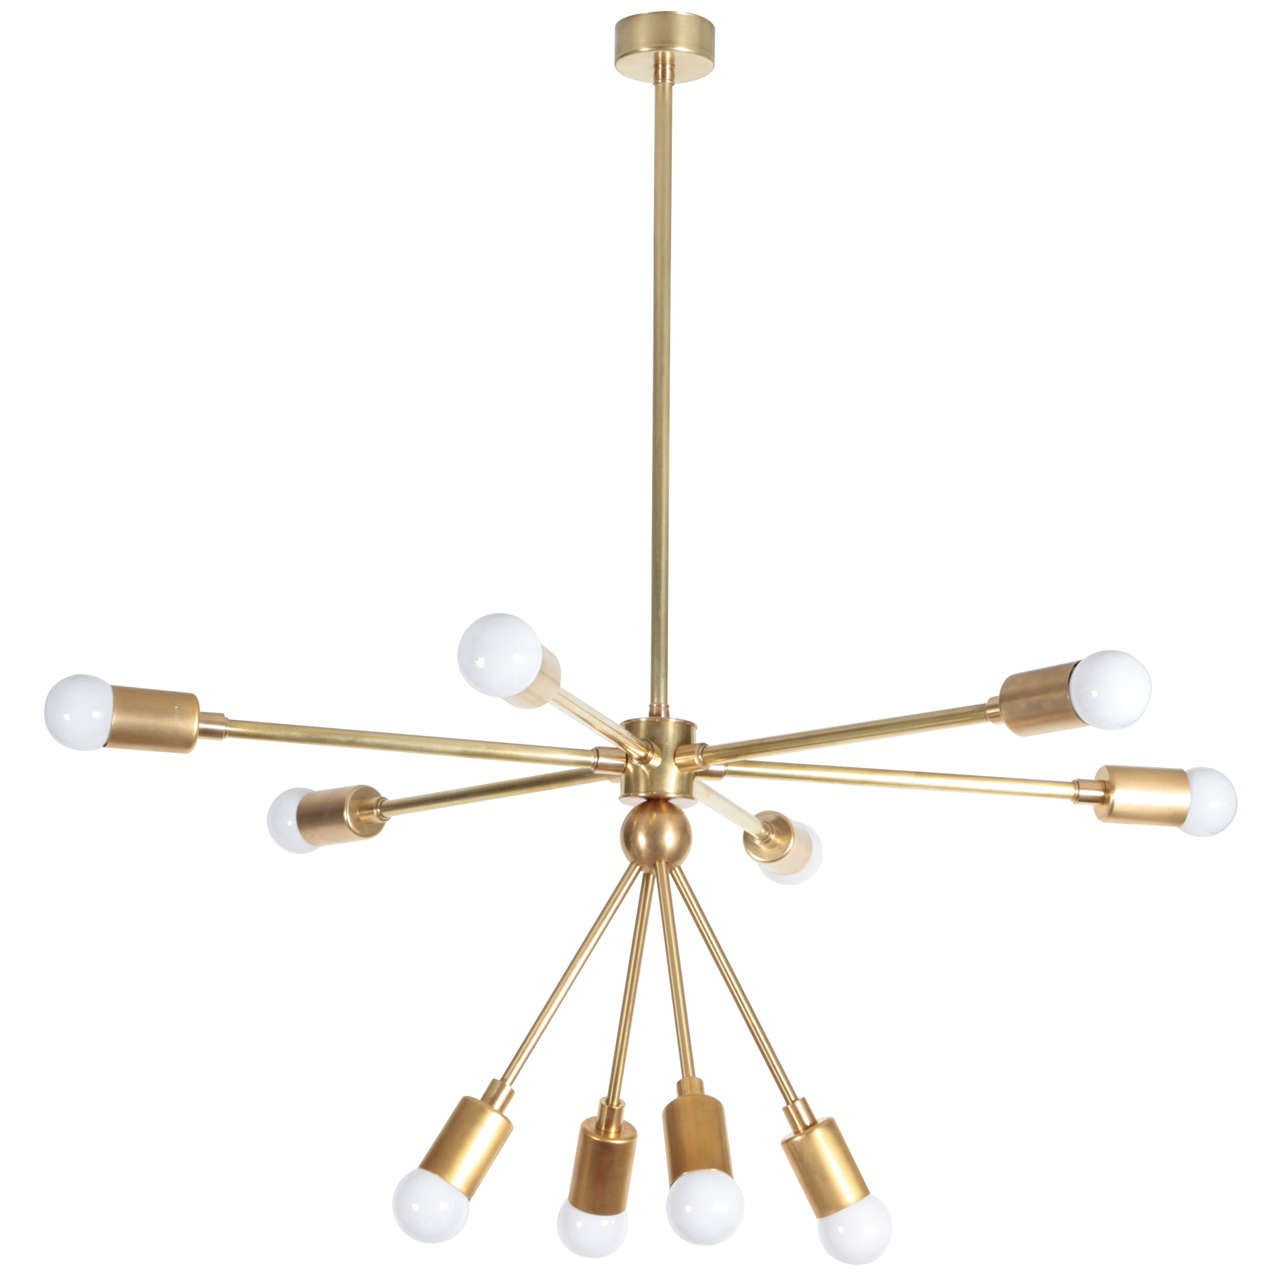 custom macomber modern brass sputnik light fixture for. Black Bedroom Furniture Sets. Home Design Ideas